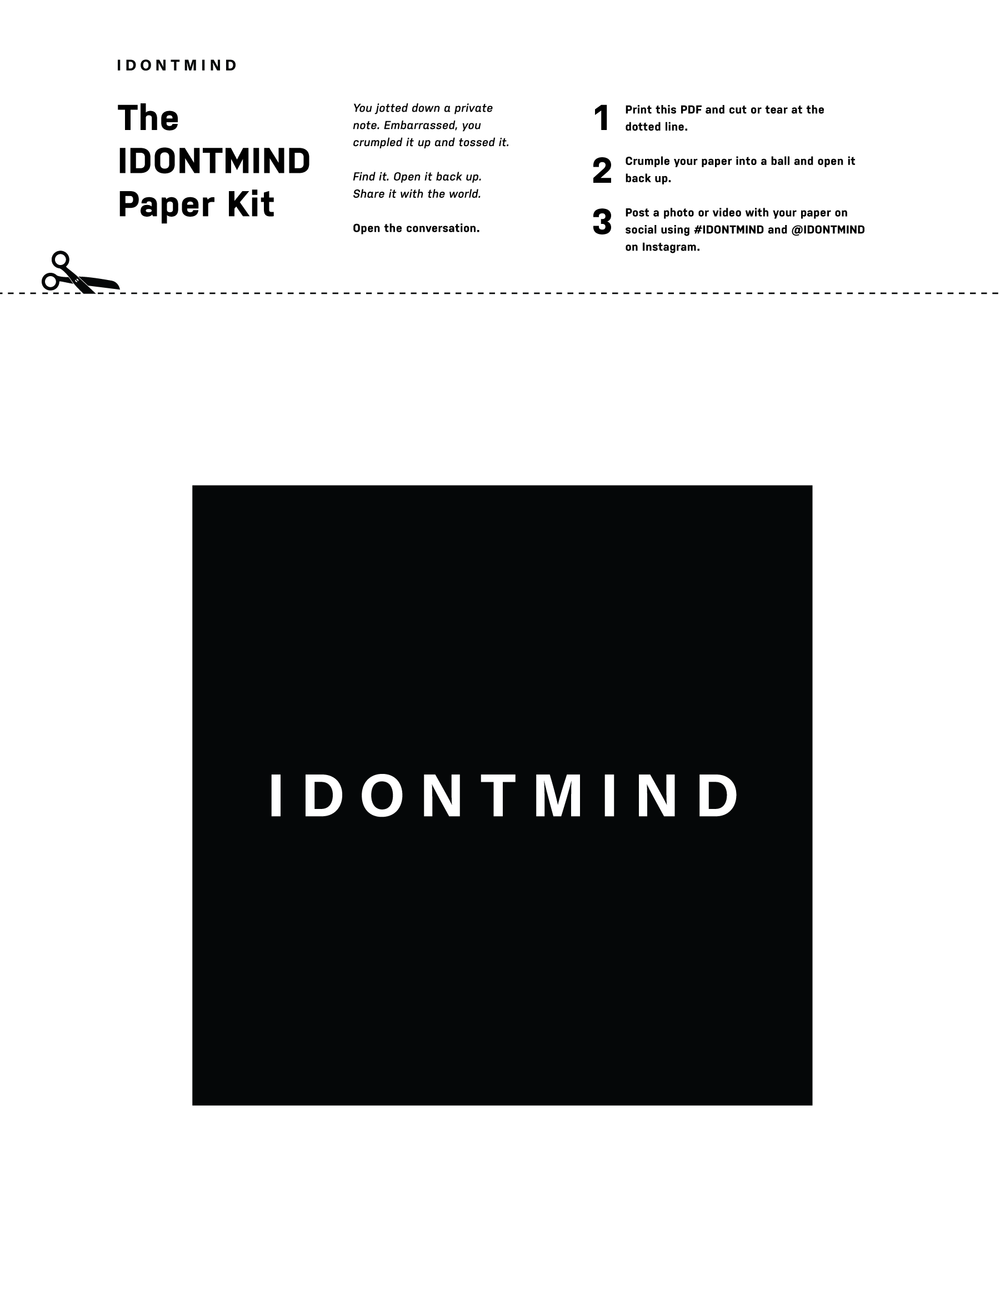 IDONTMIND Paper Kit